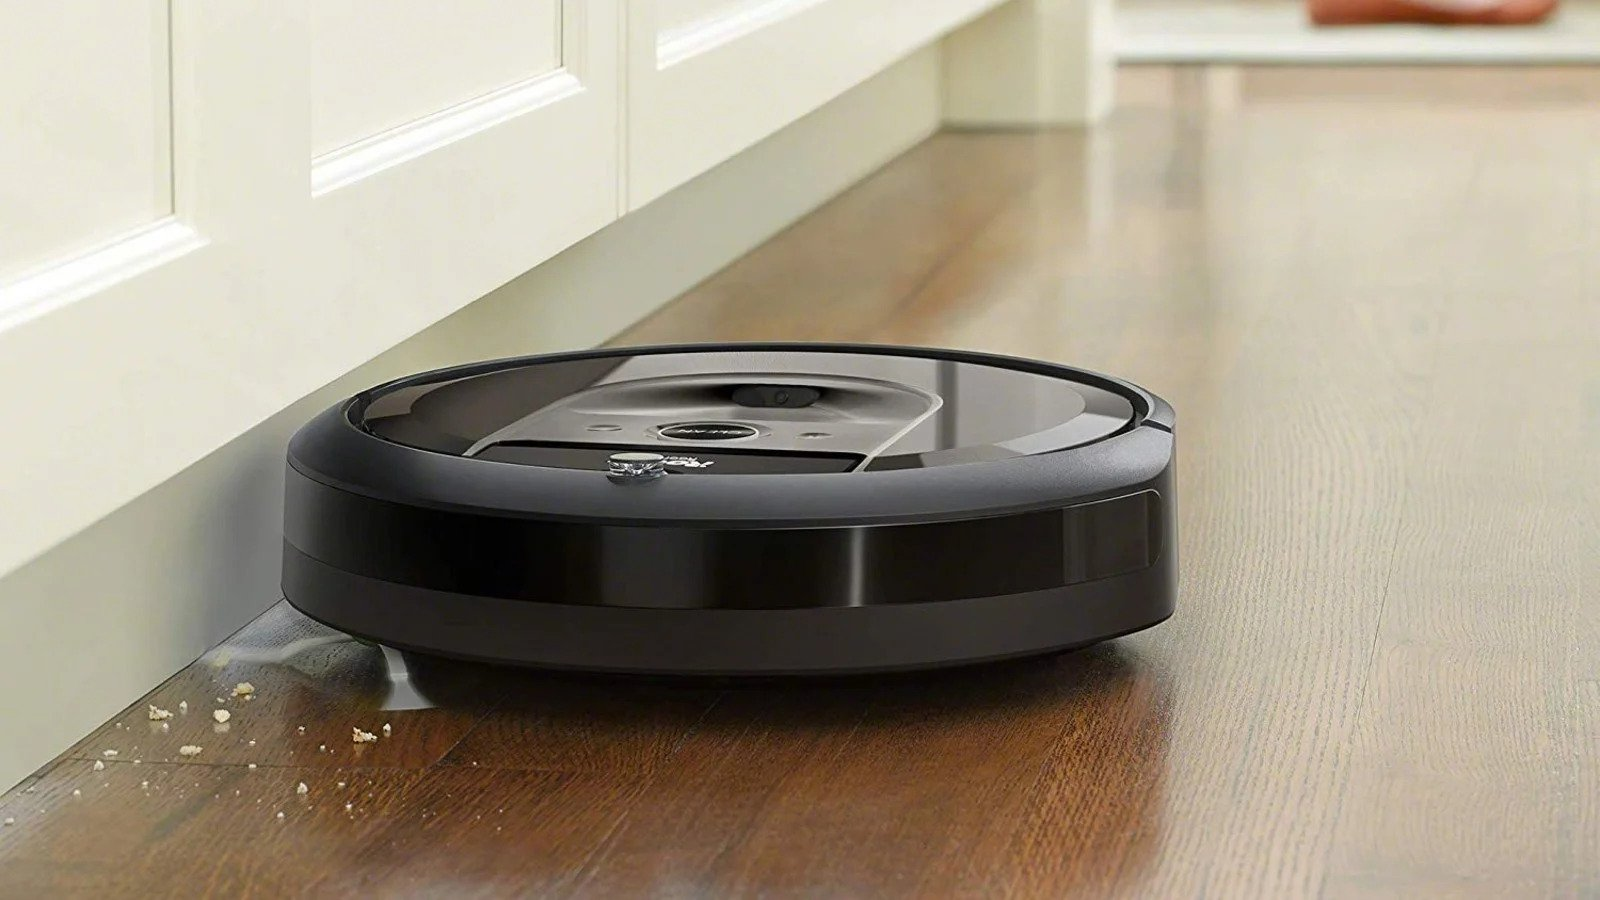 The iRobot Roomba Robot Vacuum